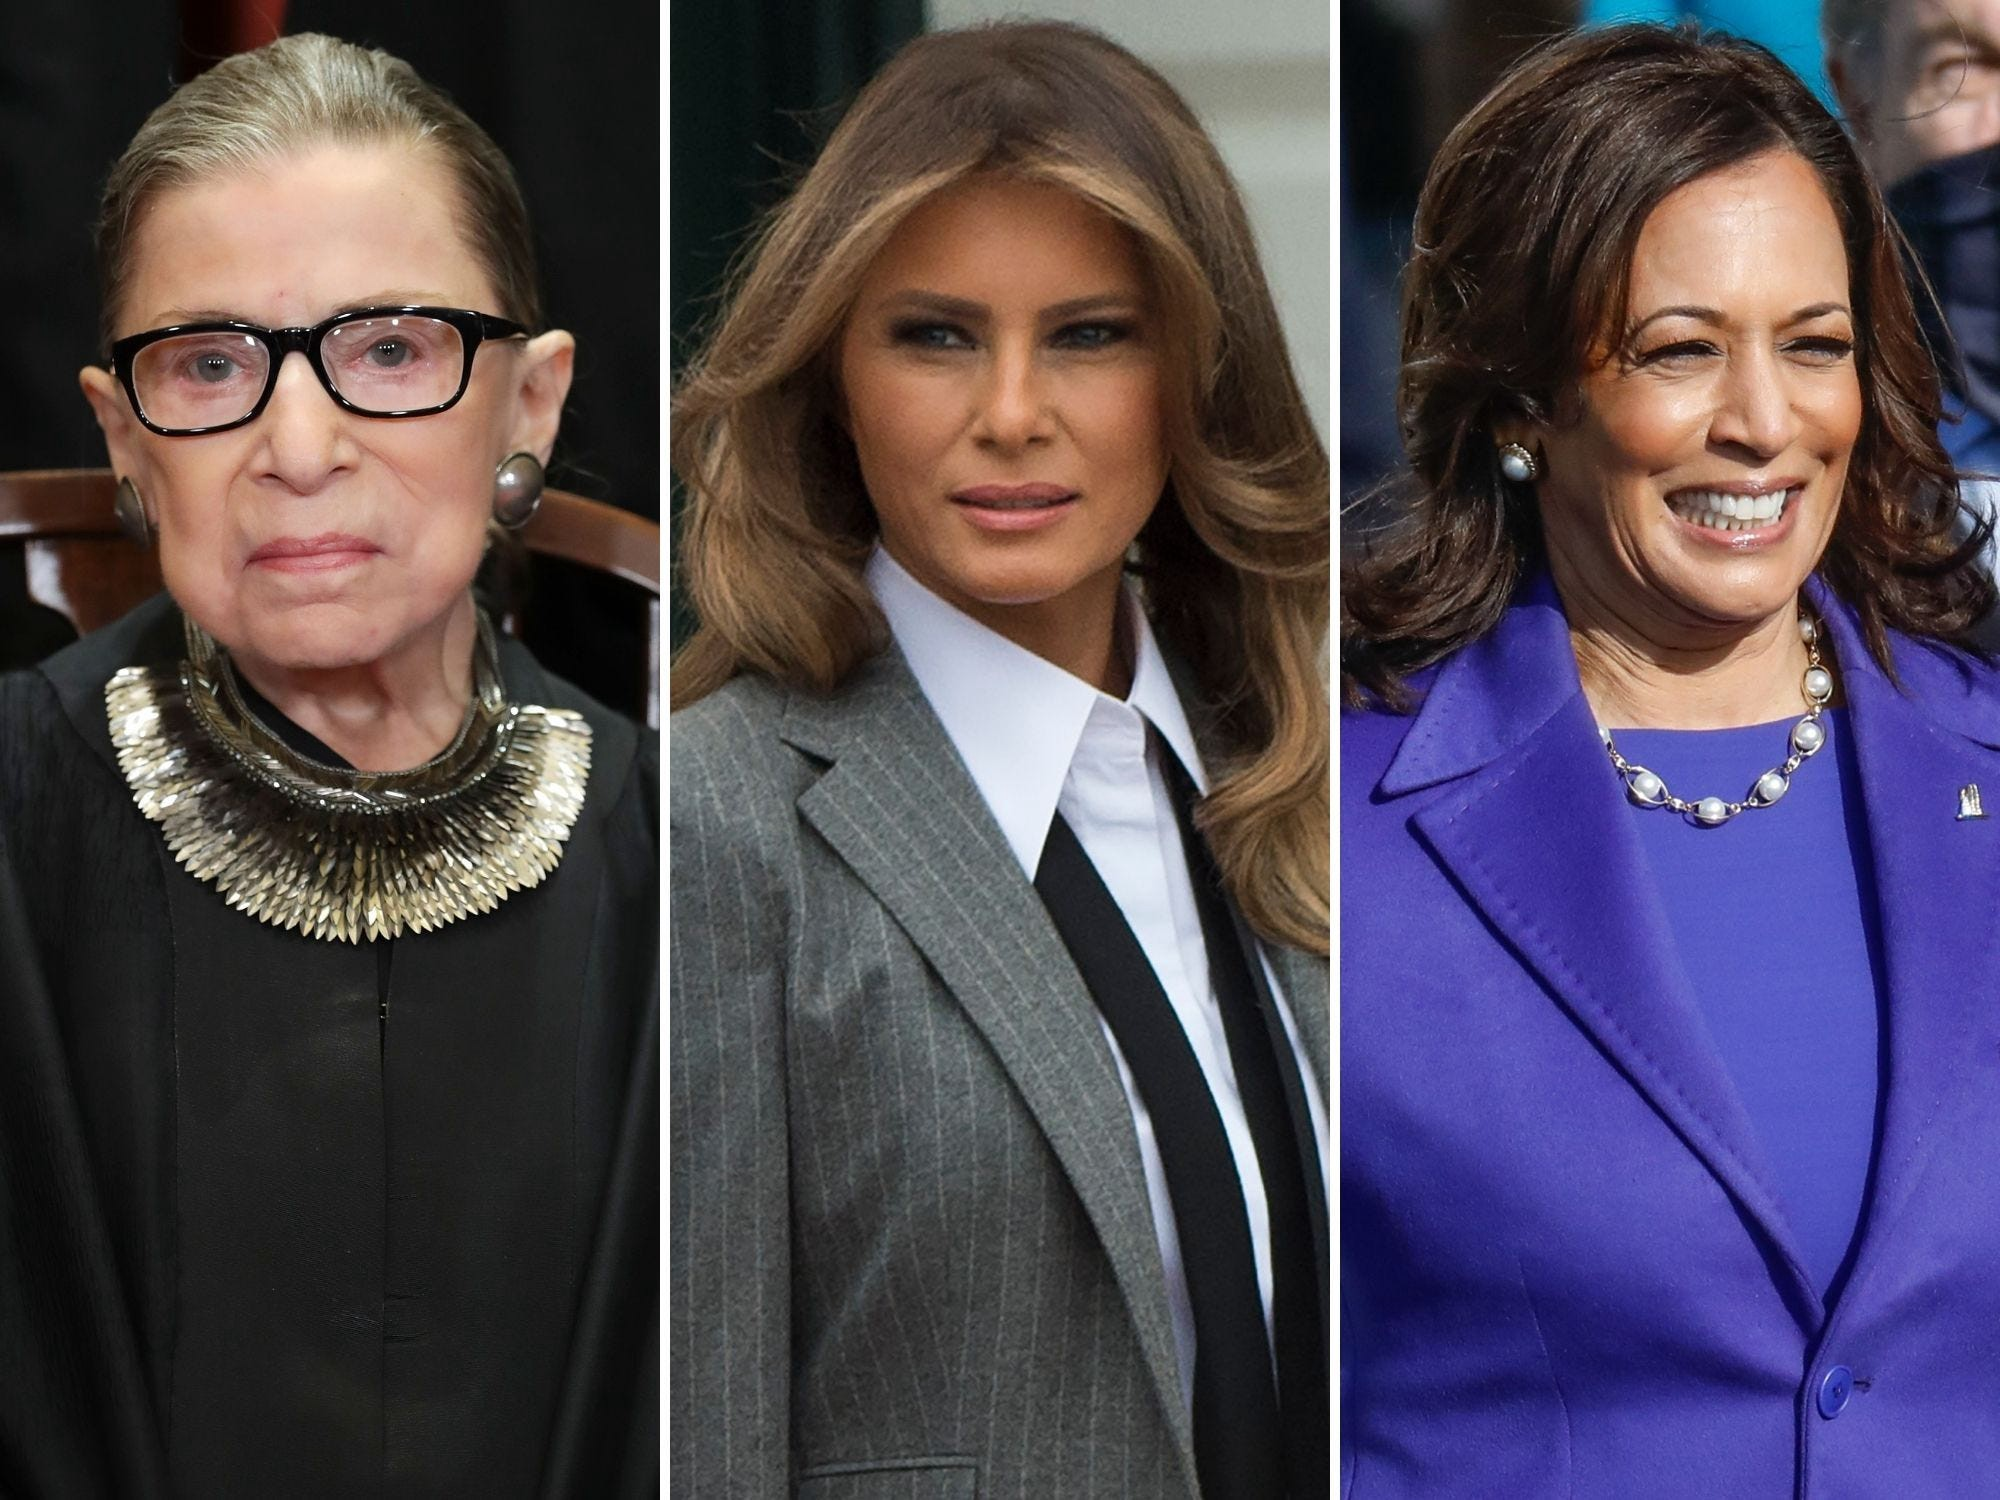 Supreme Court Justice Ruth Bader Ginsburg, former first lady Melania Trump, and Vice President Kamala Harris.